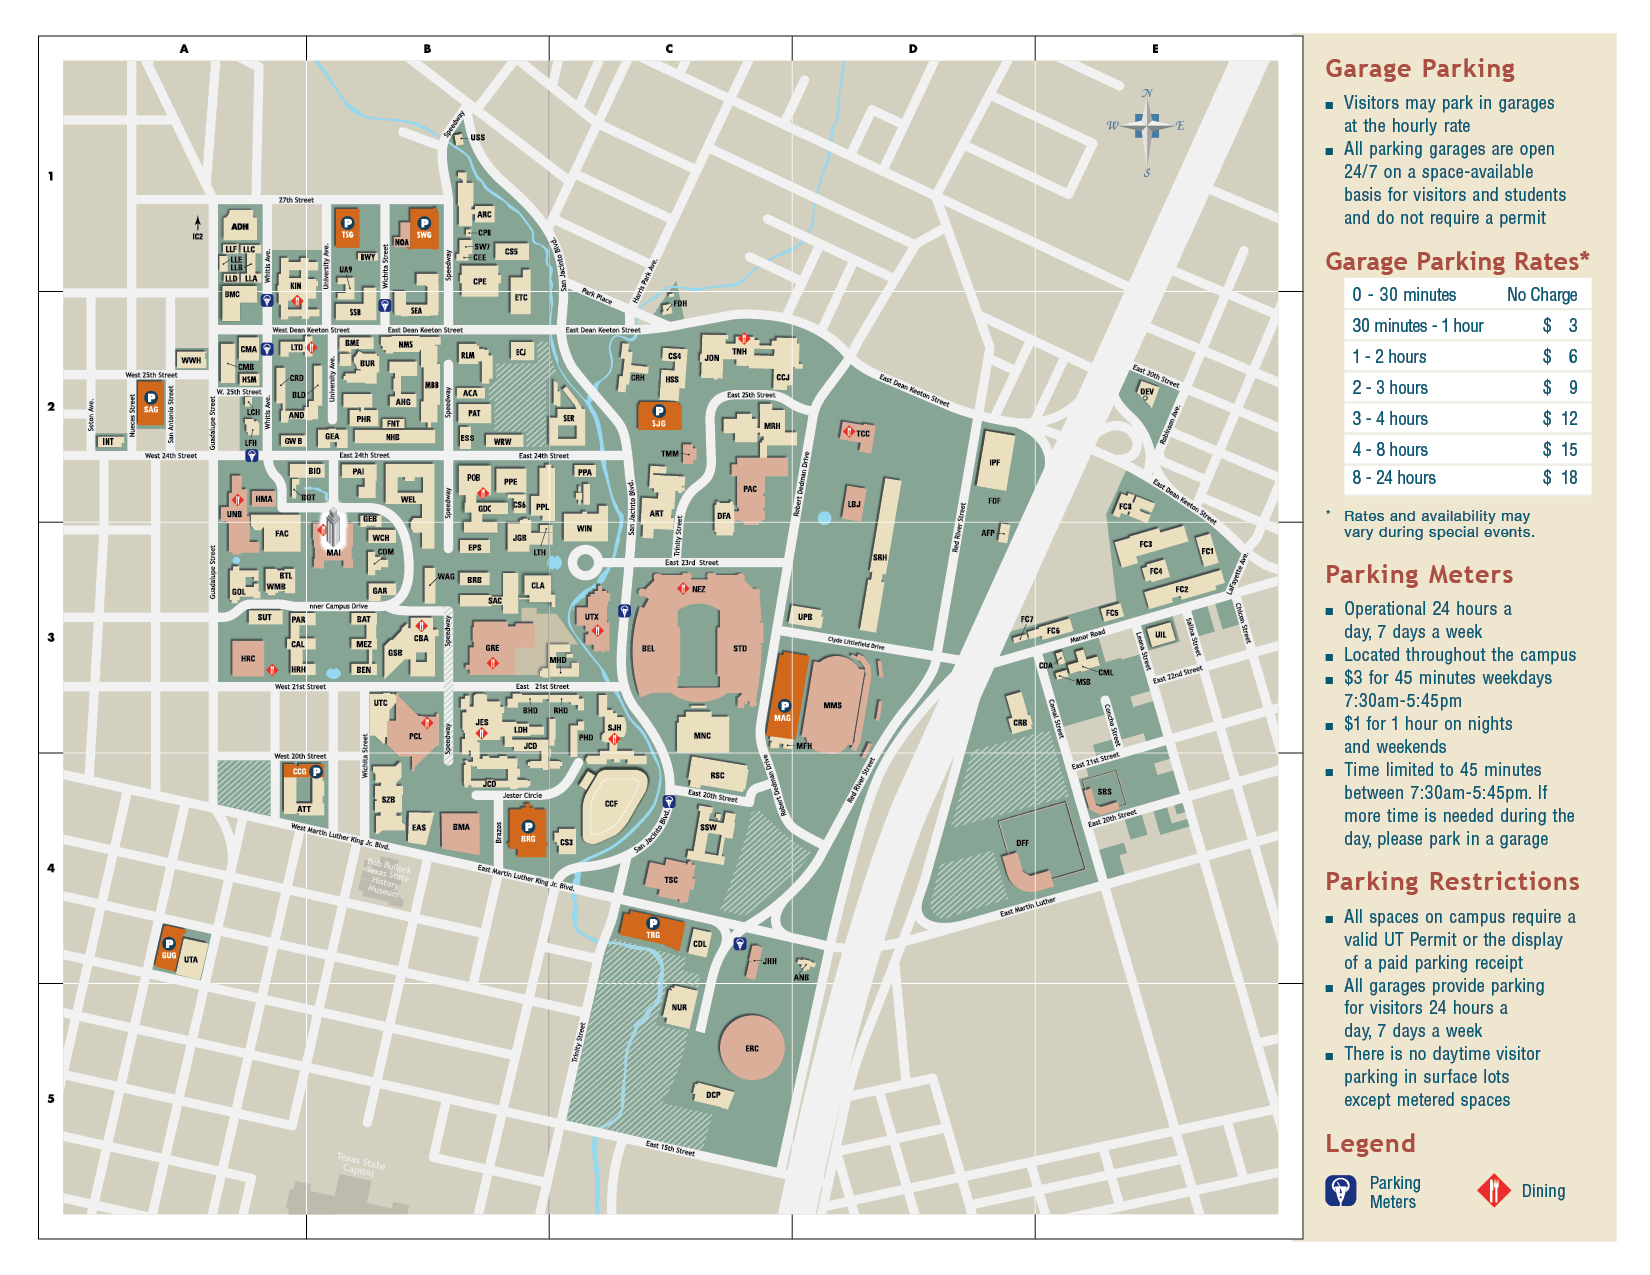 University Of Texas Austin Campus Map | Business Ideas 2013